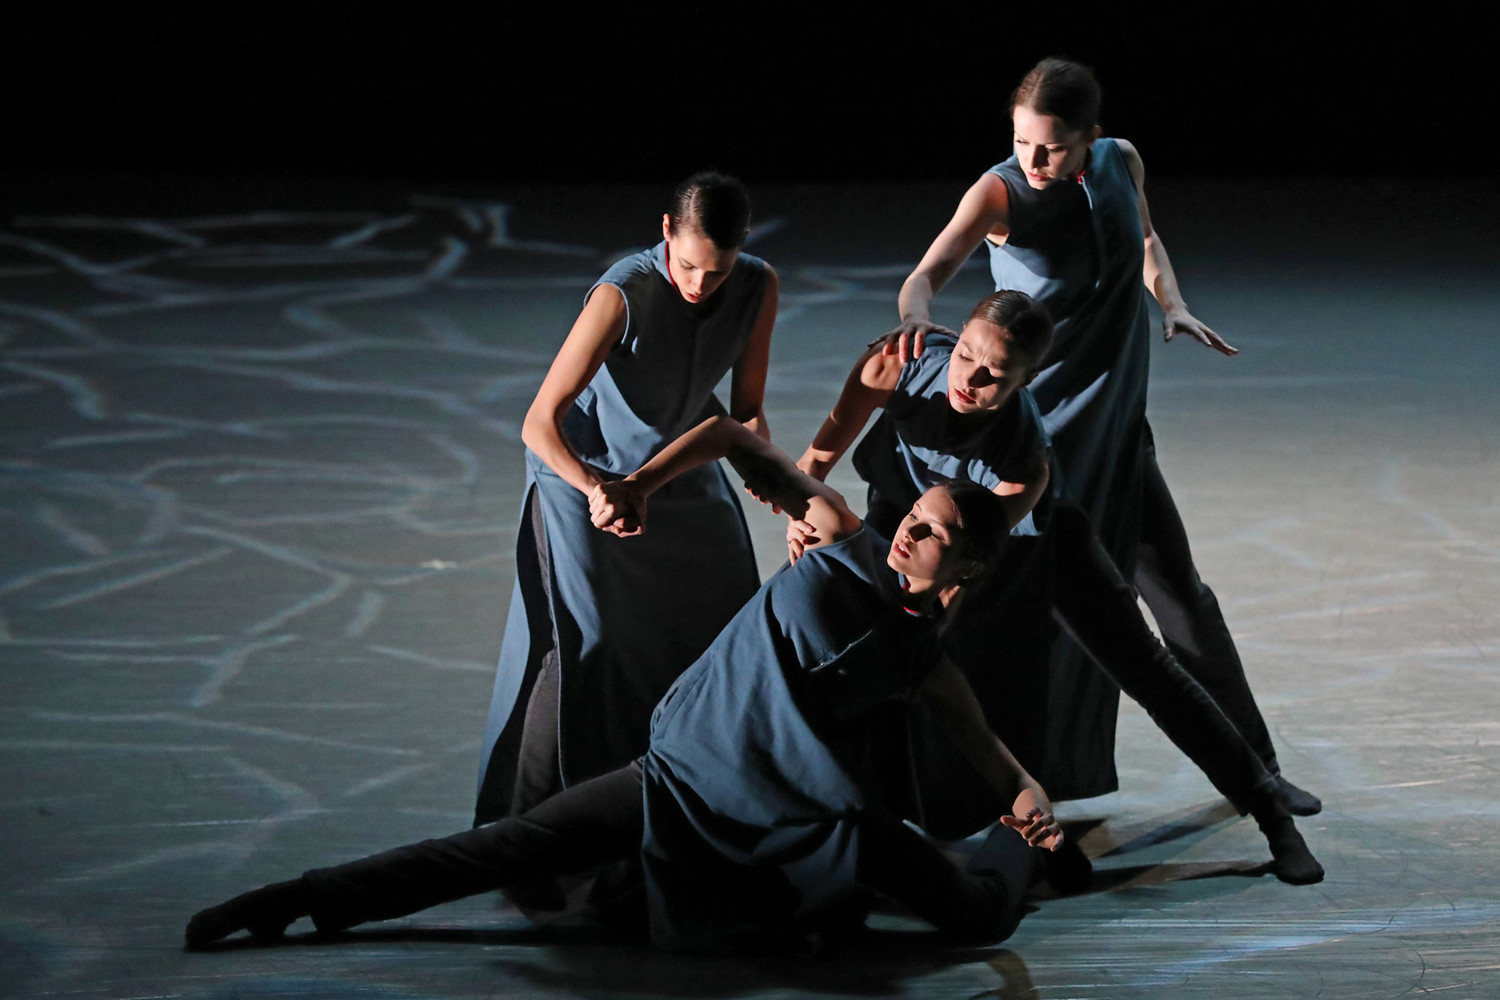 BWW Review: UNC Doctors Do No Harm in Charlotte Ballet's SHAKESPEARE REINVENTED